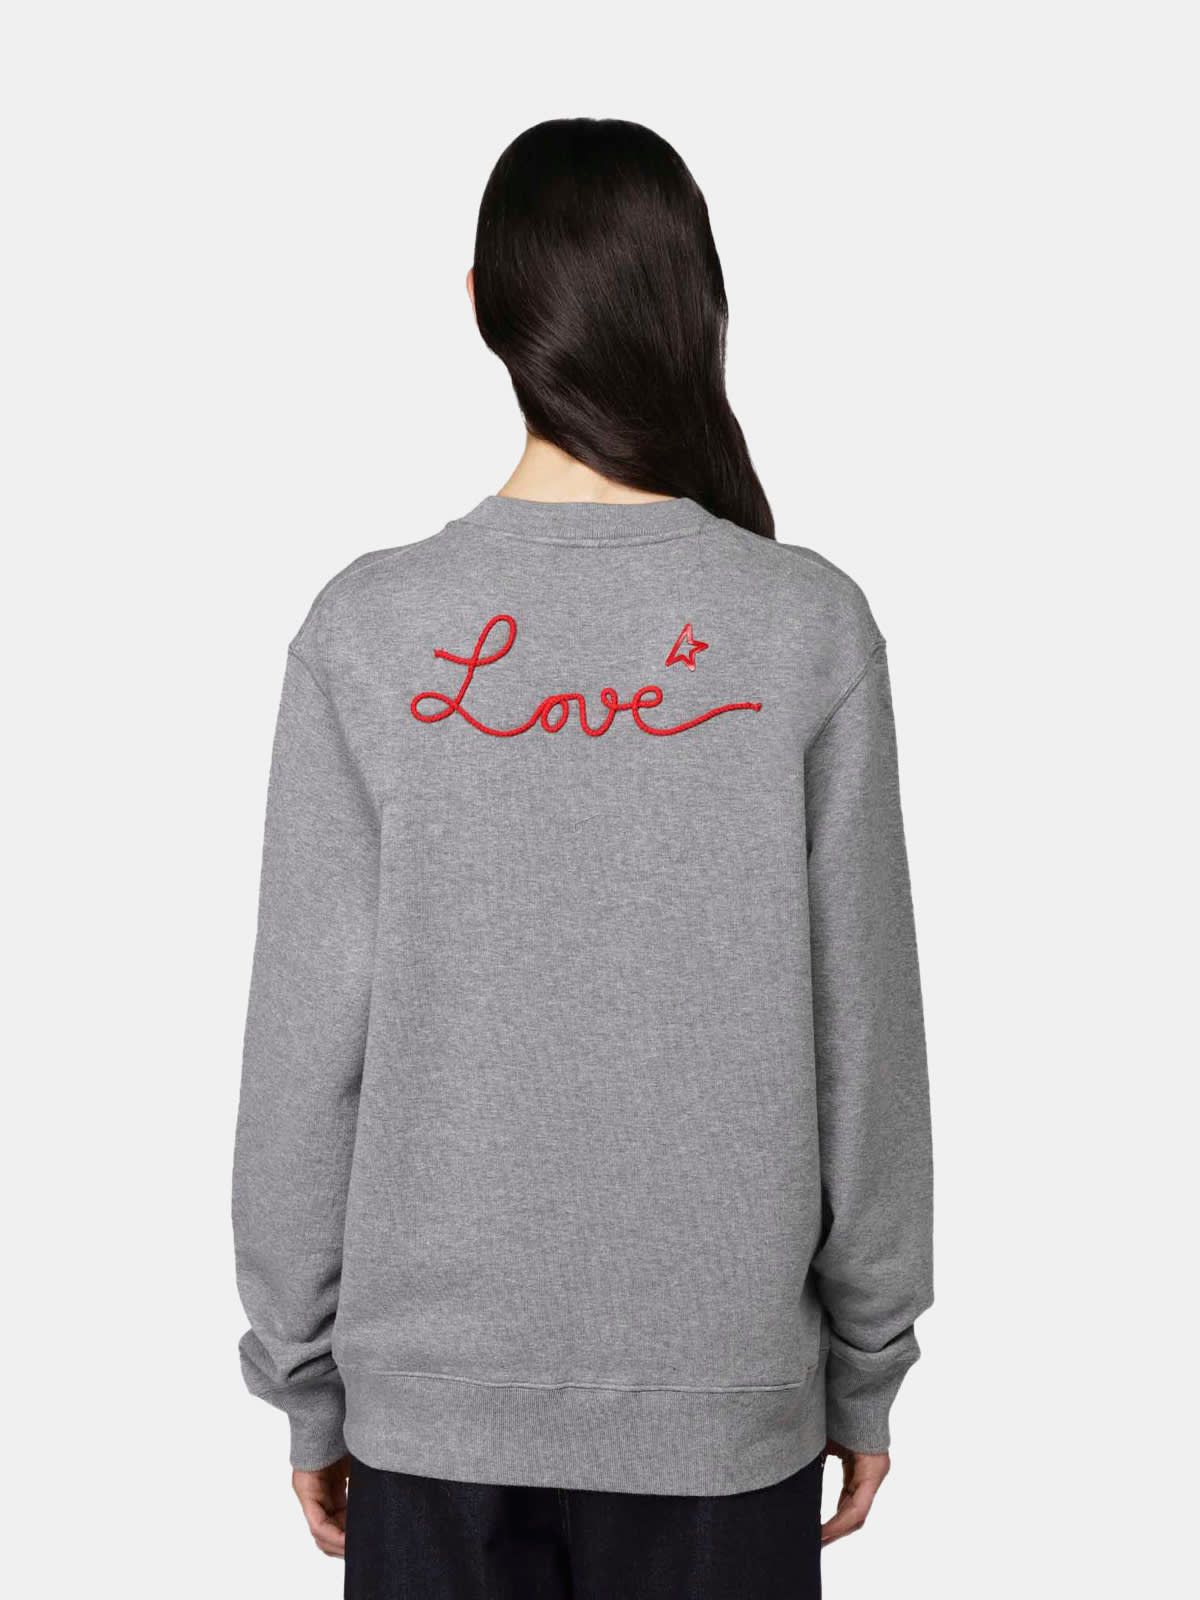 Grey Robbie sweatshirt with Love embroidery